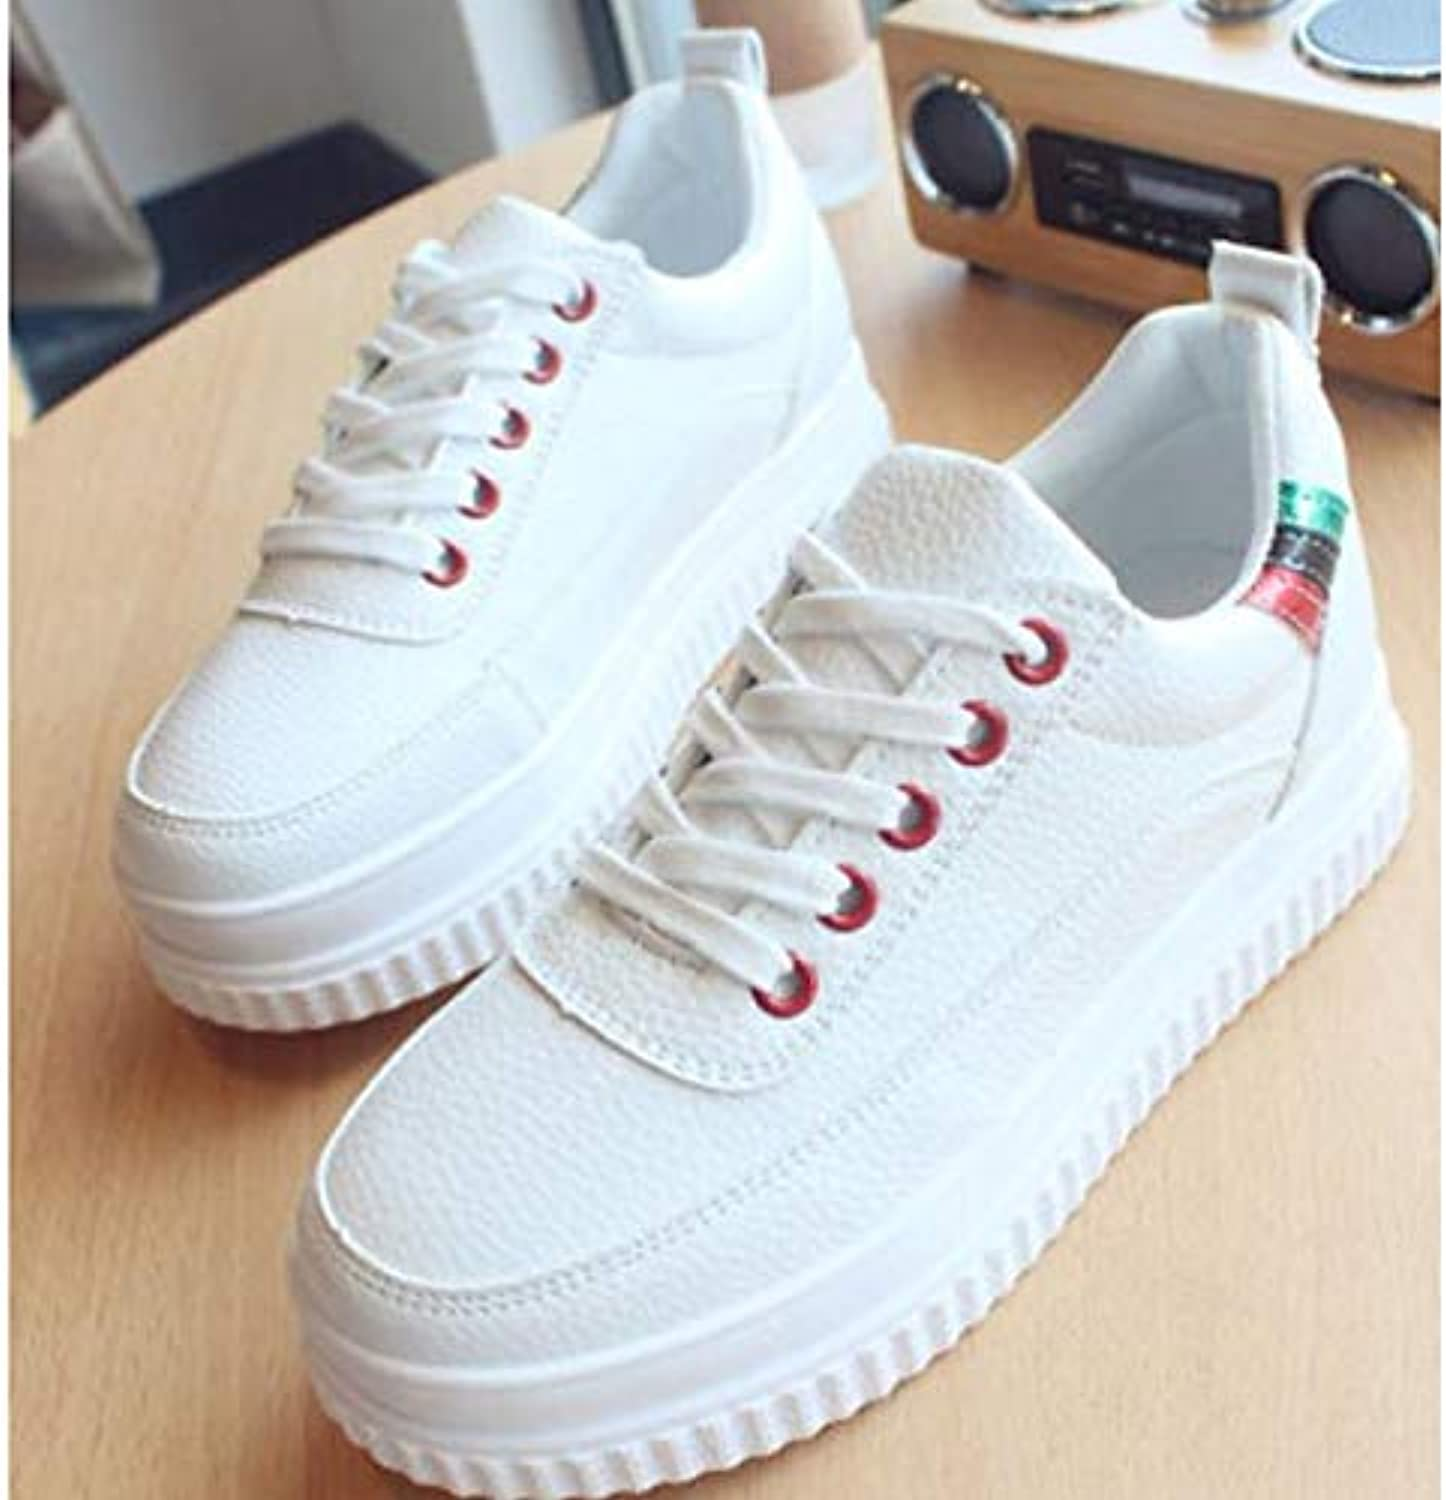 Women's Comfort shoes Faux Leather Spring & Fall Sneakers Flat Heel White Red